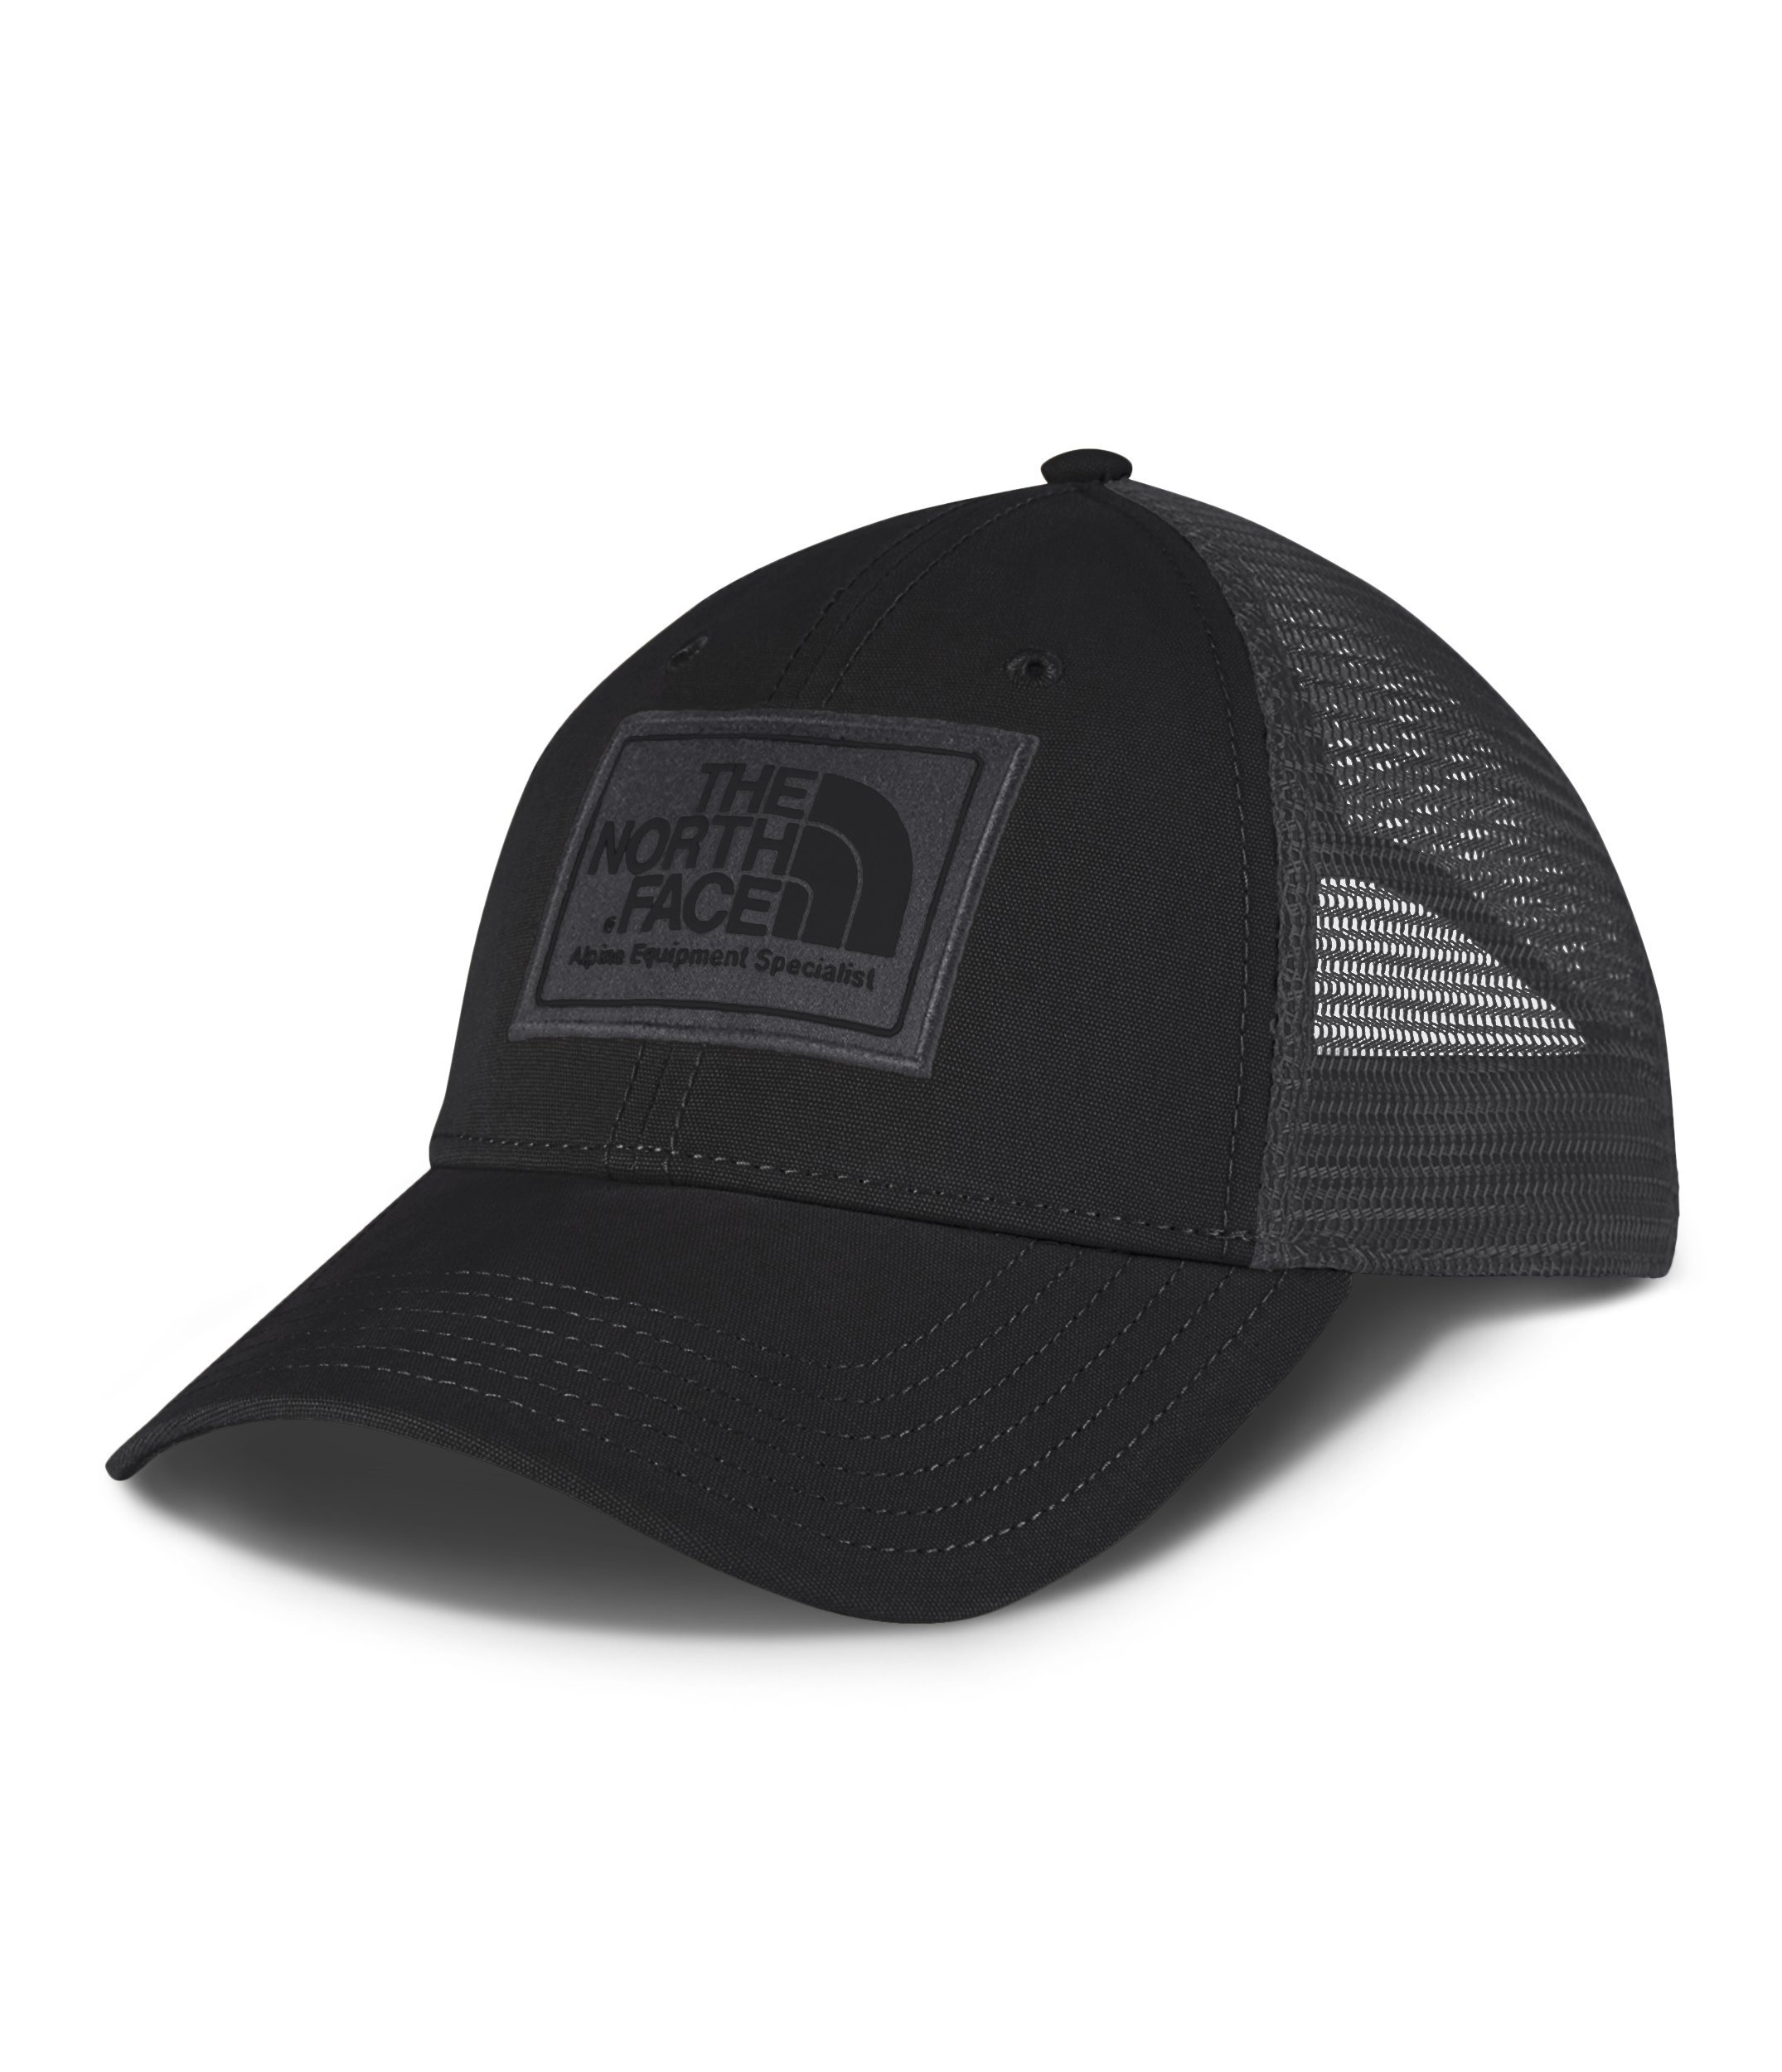 8b240ebfab207 Galleon - The North Face Unisex Mudder Trucker Hat TNF Black/Asphalt Grey  Camo One Size